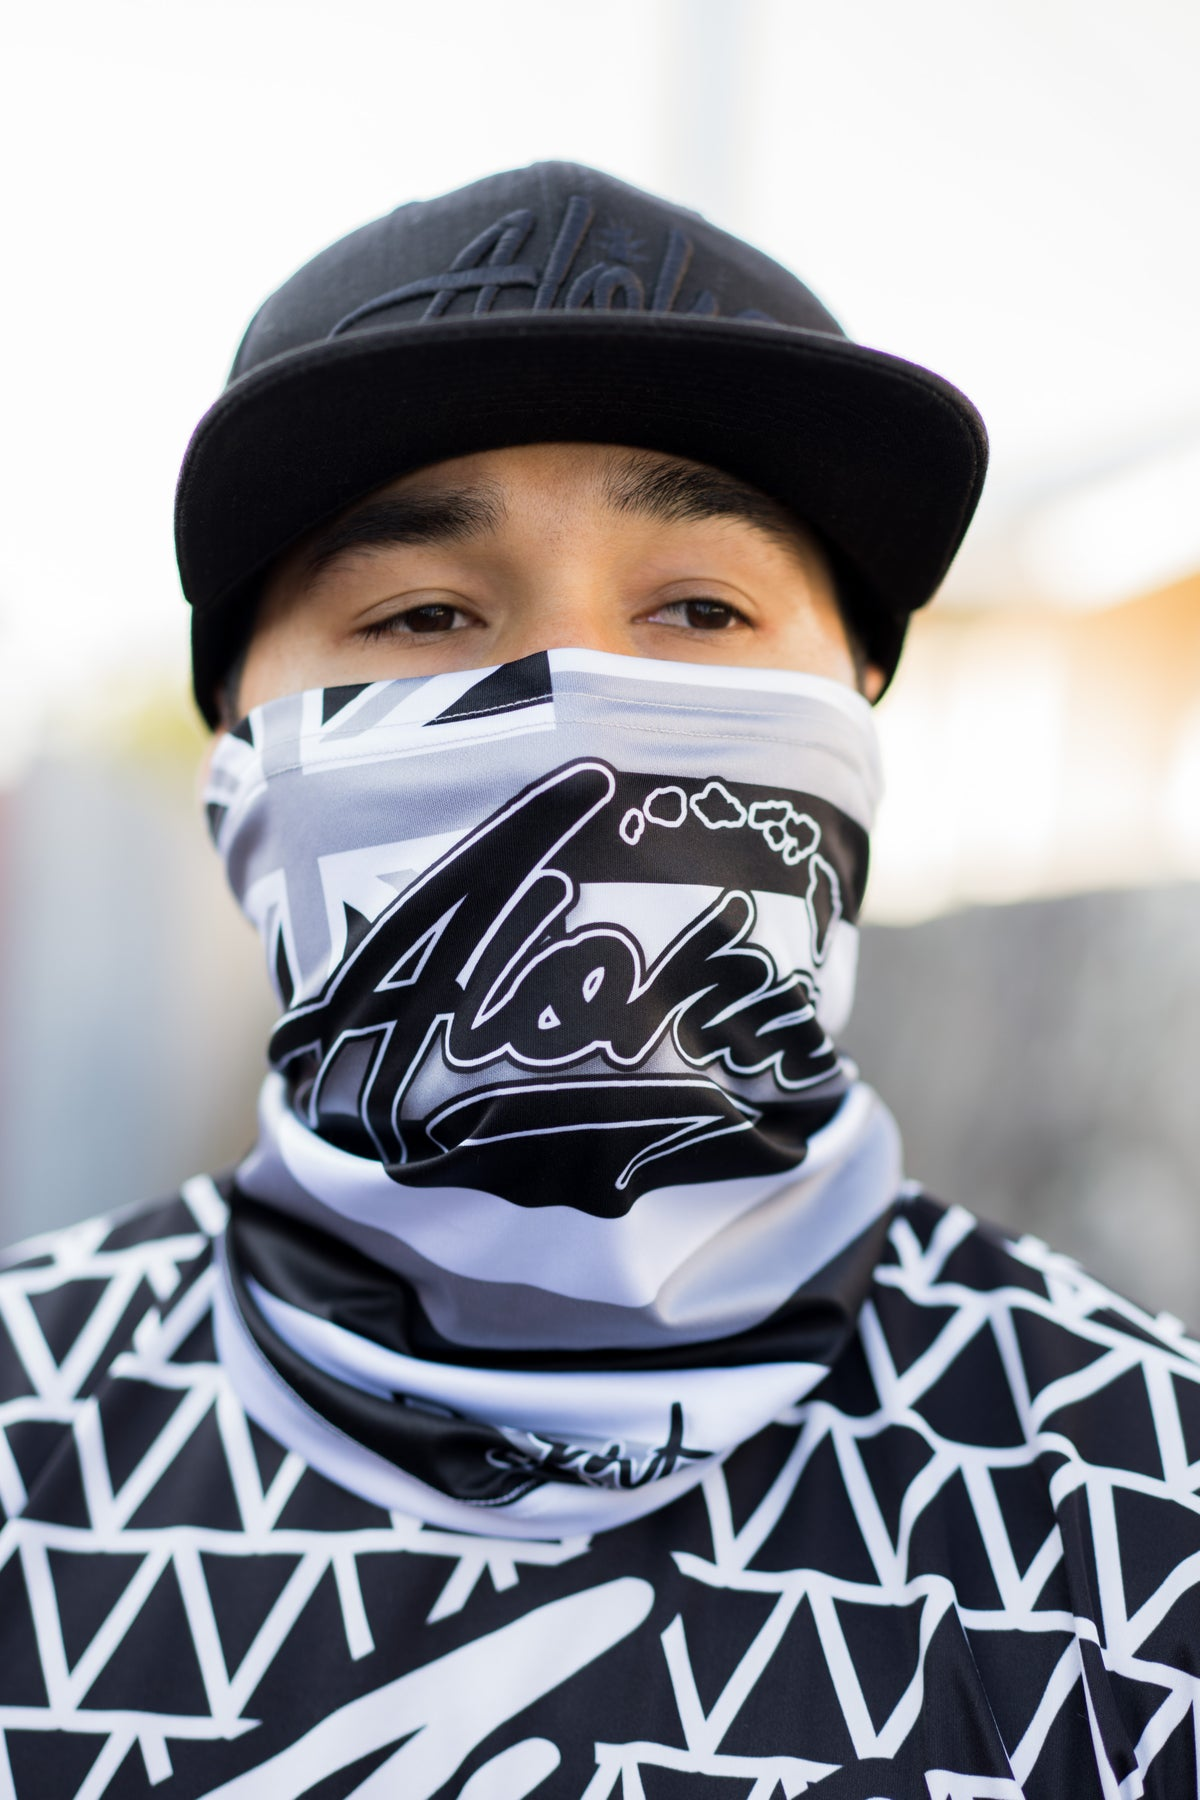 Aloha Islands Flag Face Shield (Grey/Black/White)